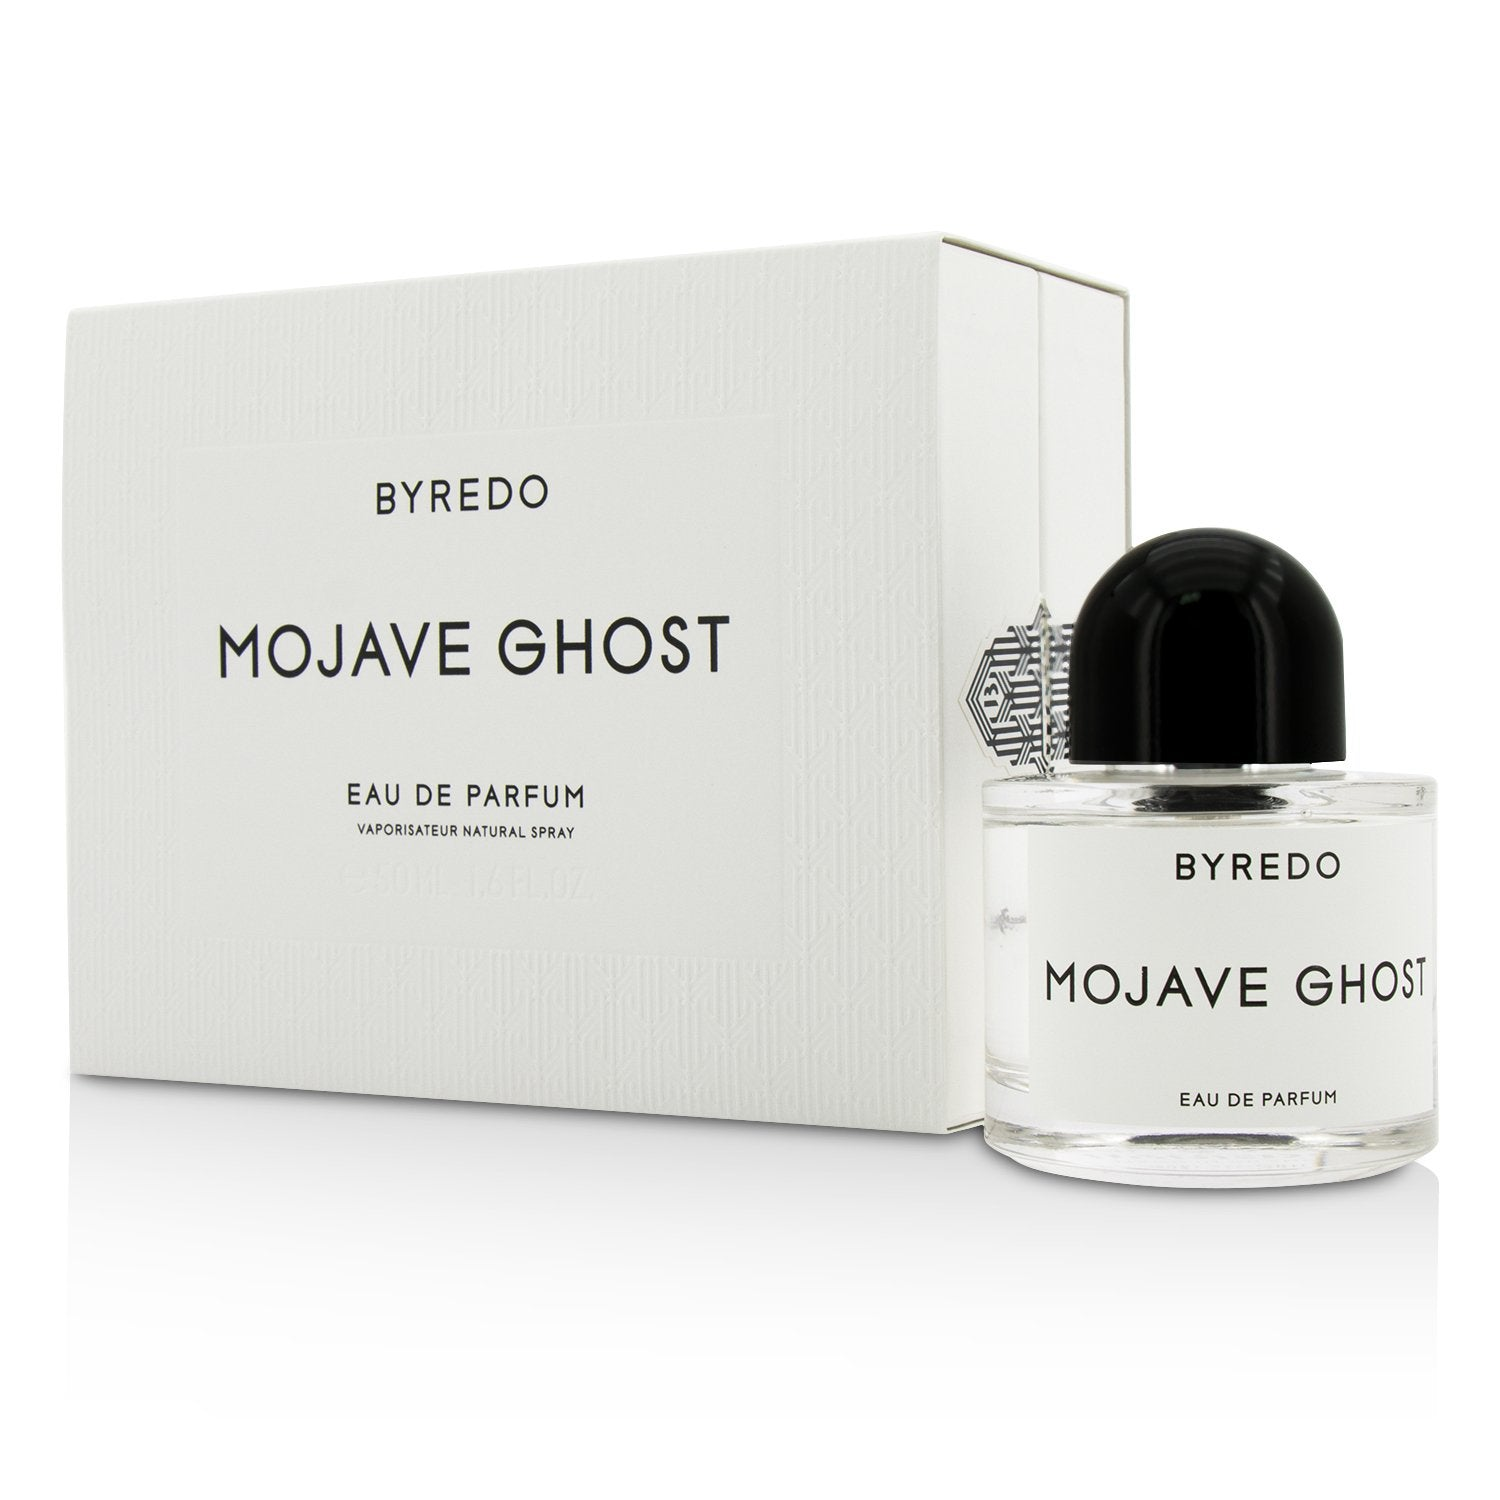 Perfume oil inspired by Mojave Ghost